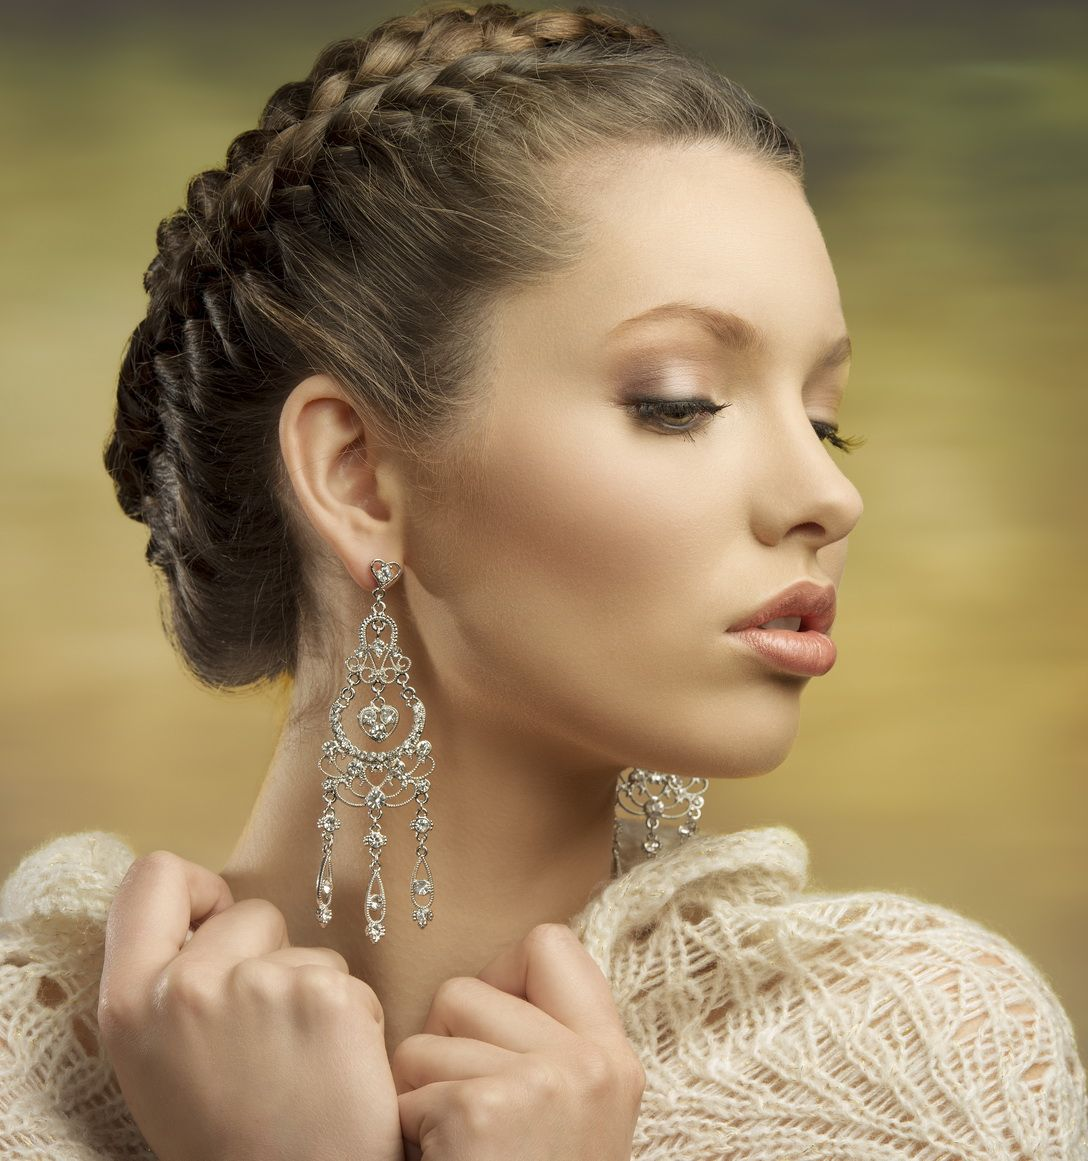 Groovy Hairstyles With Braids Elegant Updo And Updo On Pinterest Short Hairstyles For Black Women Fulllsitofus